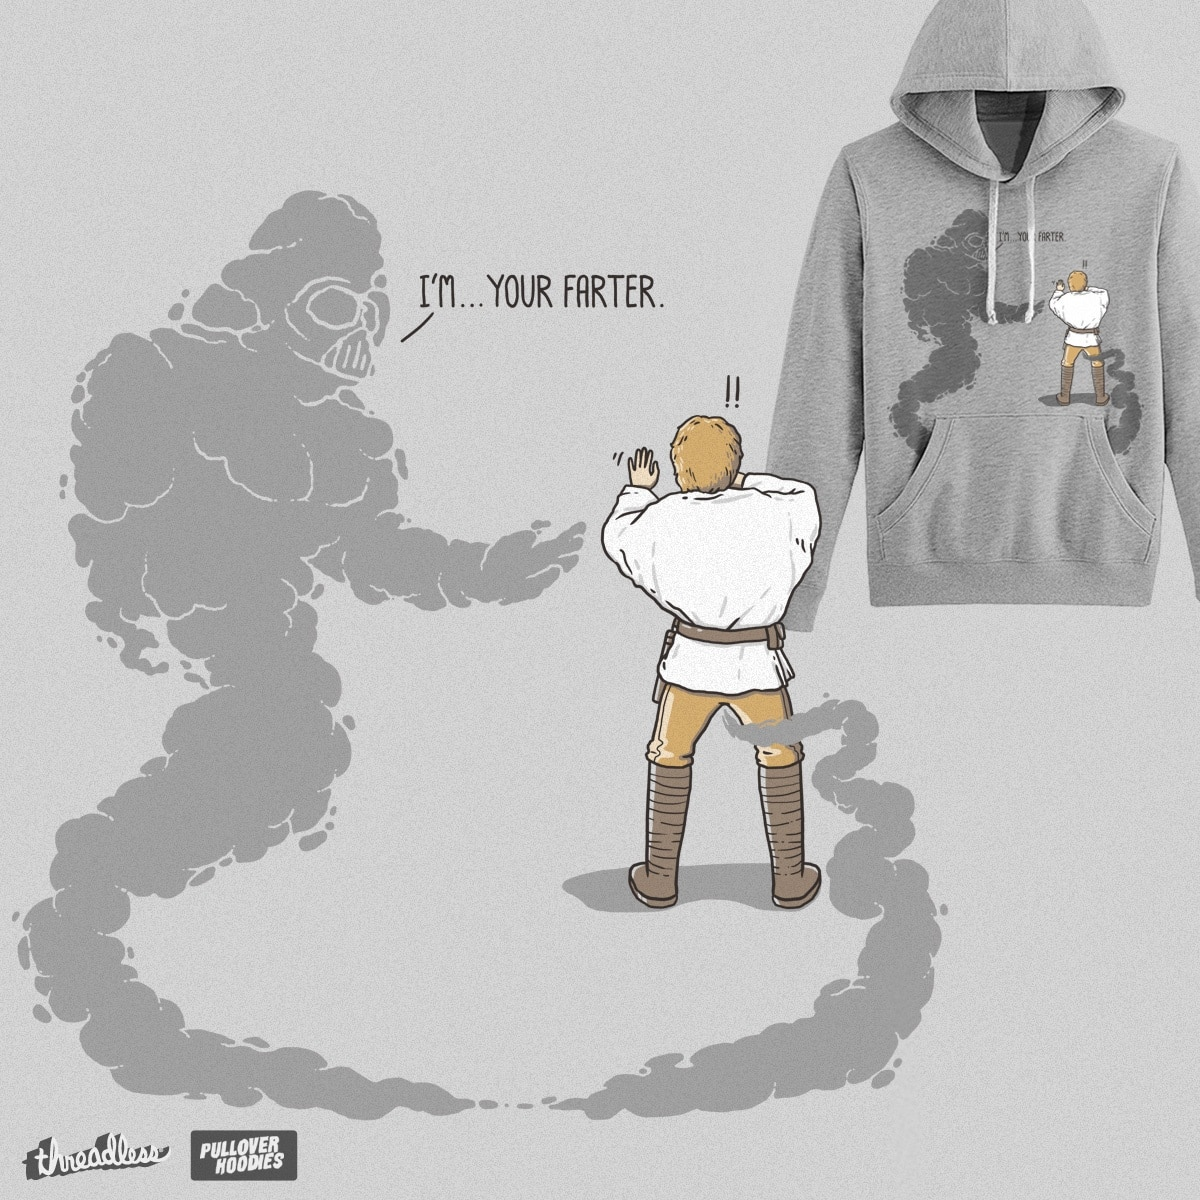 The Dark Side by uptme on Threadless